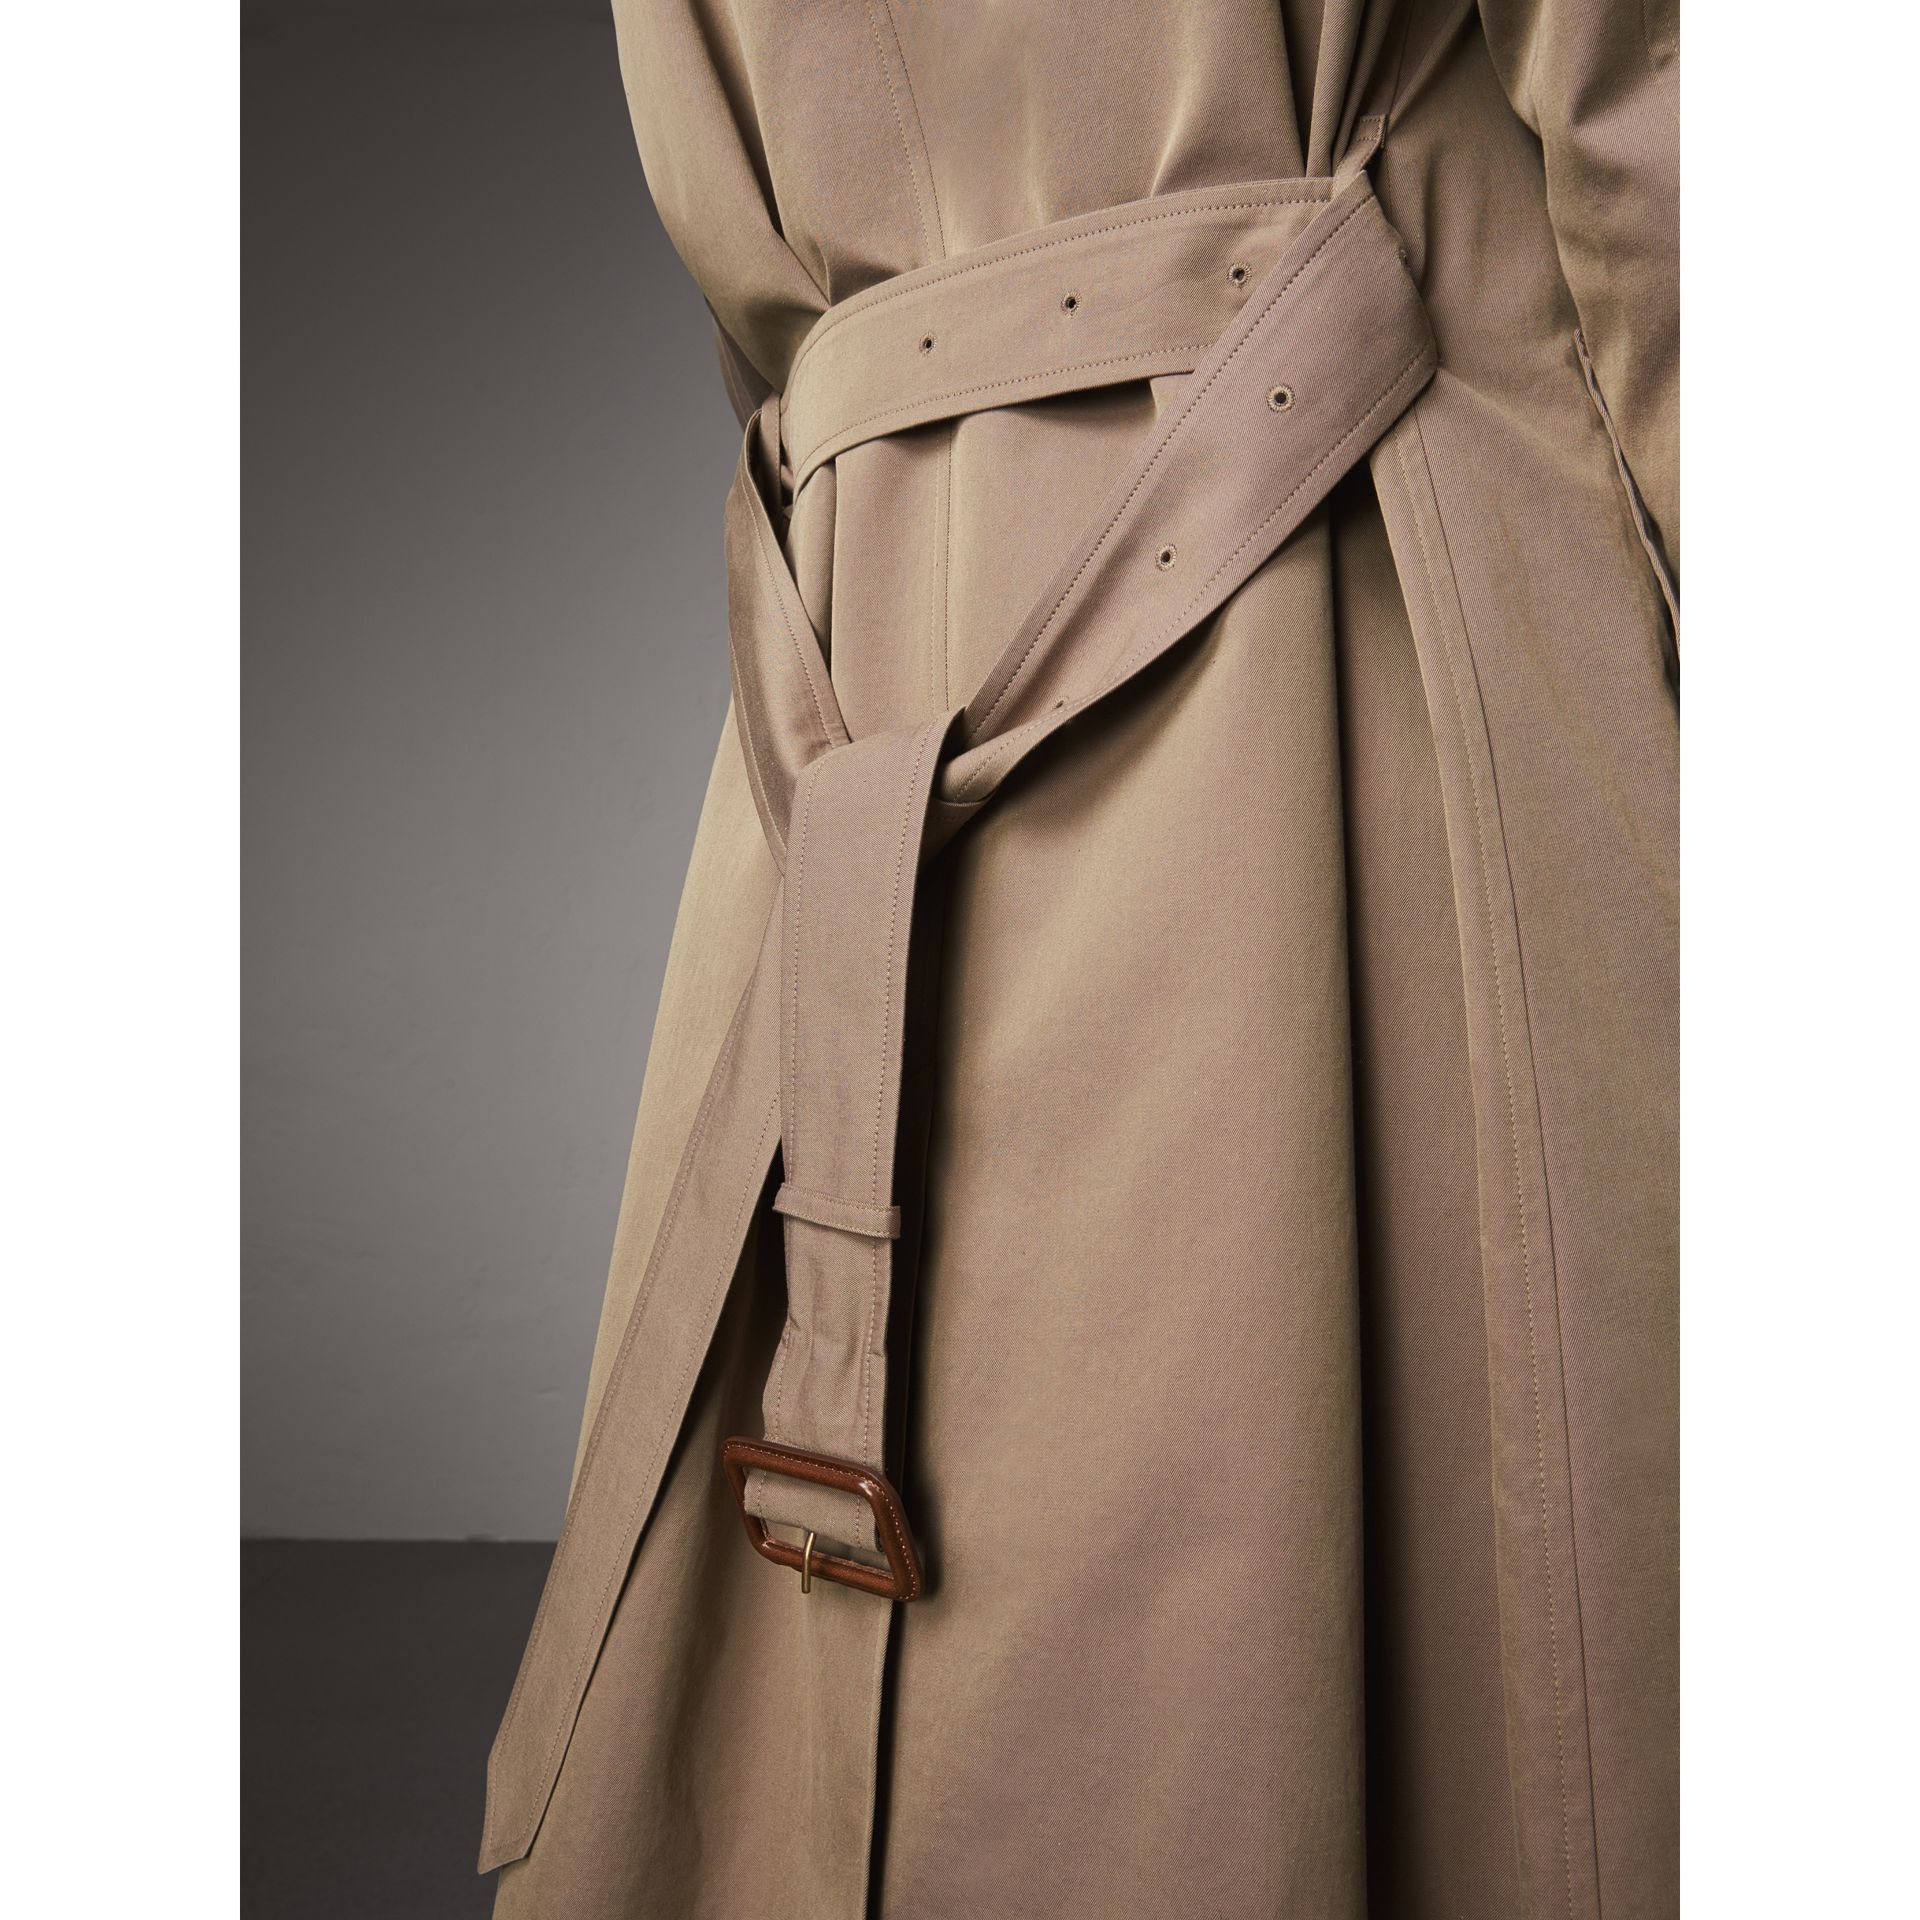 The Brighton – Car Coat extra-long (Brun Taupe) - Femme | Burberry - photo de la galerie 5